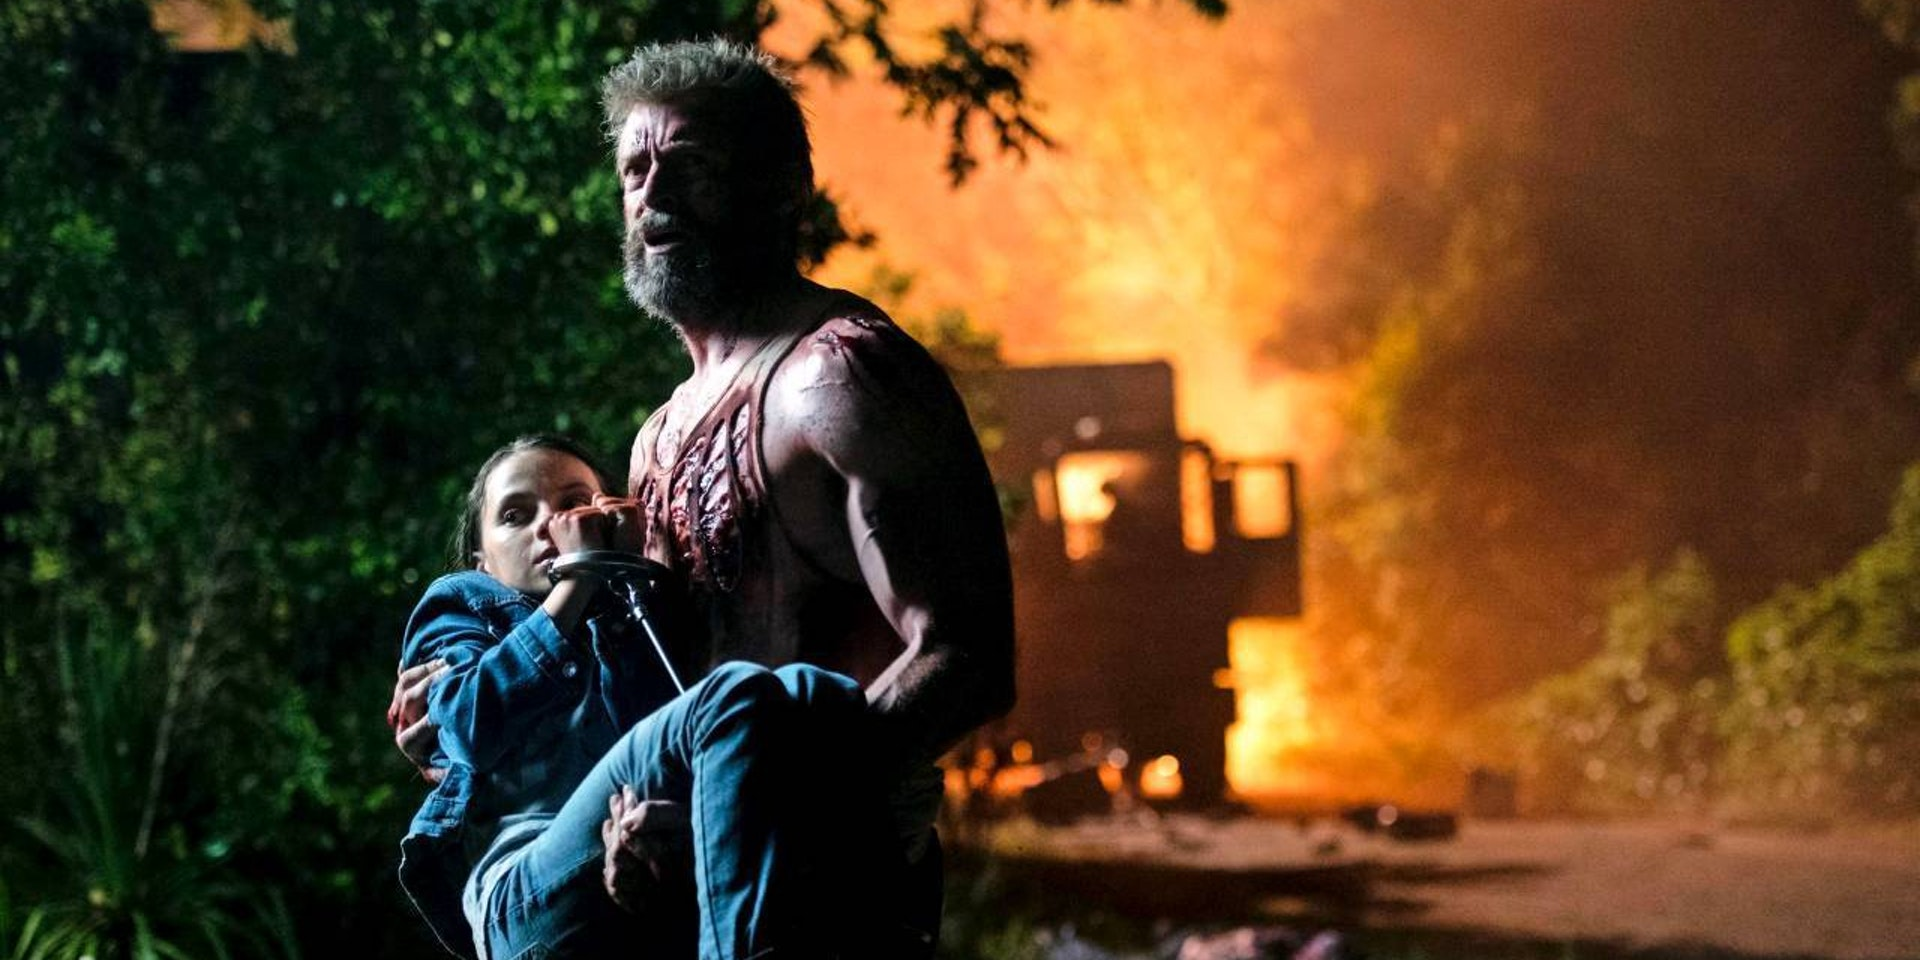 Hugh Jackman as Wolverine and Dafne Keen as Laura/X-23 in Fox's 'Logan'